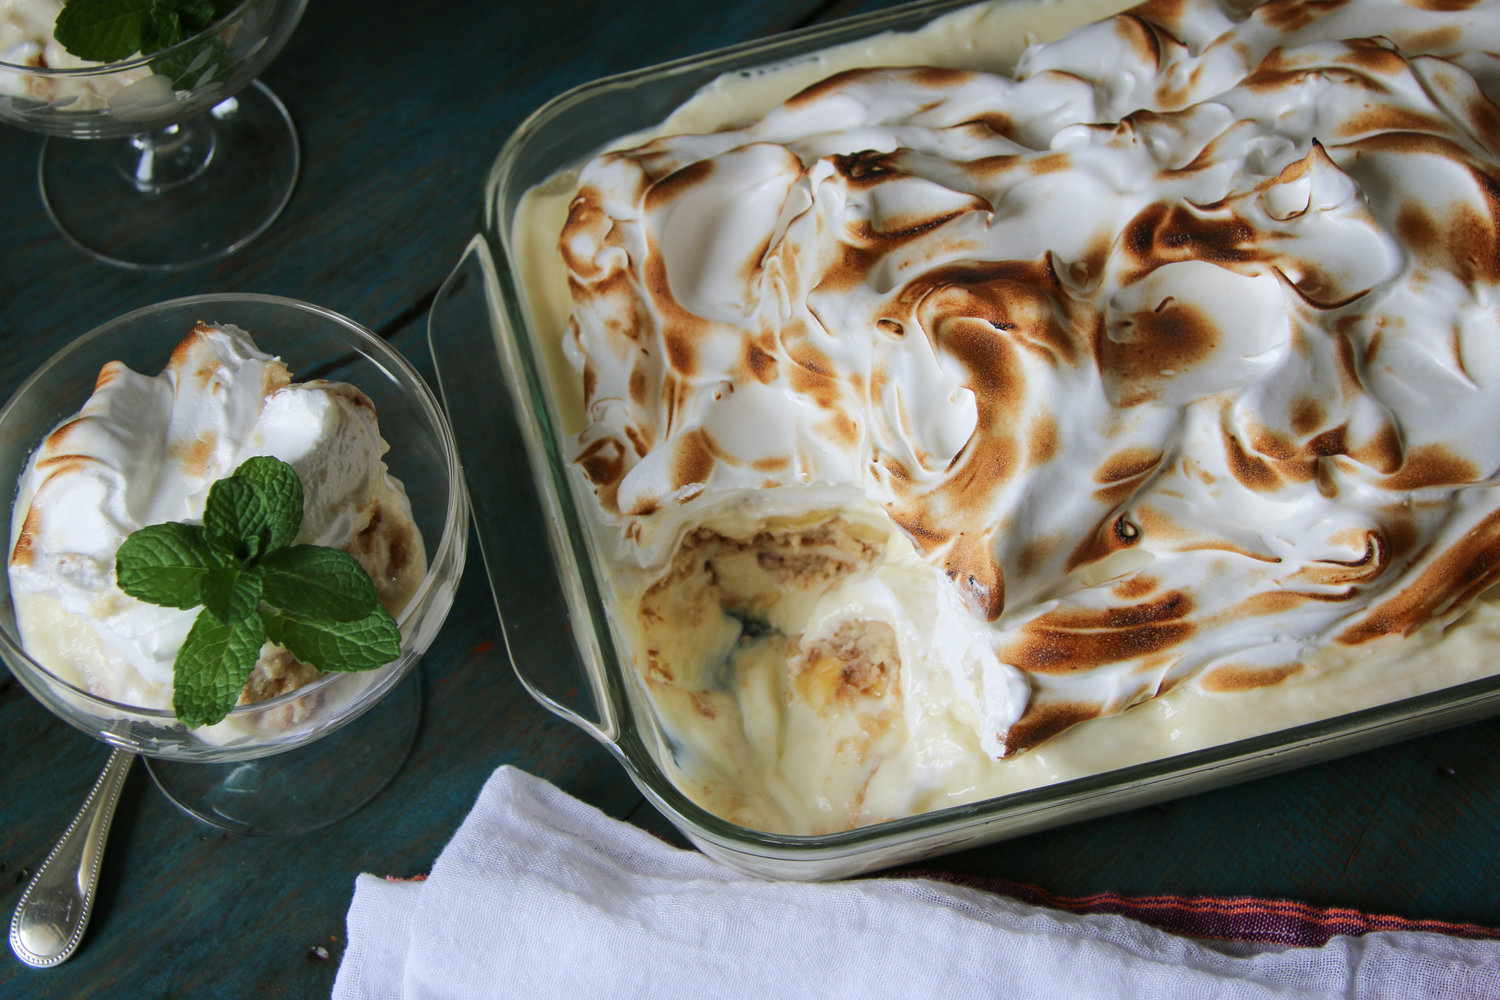 Banana+Pudding+with+Meringue+topping+3176.jpg